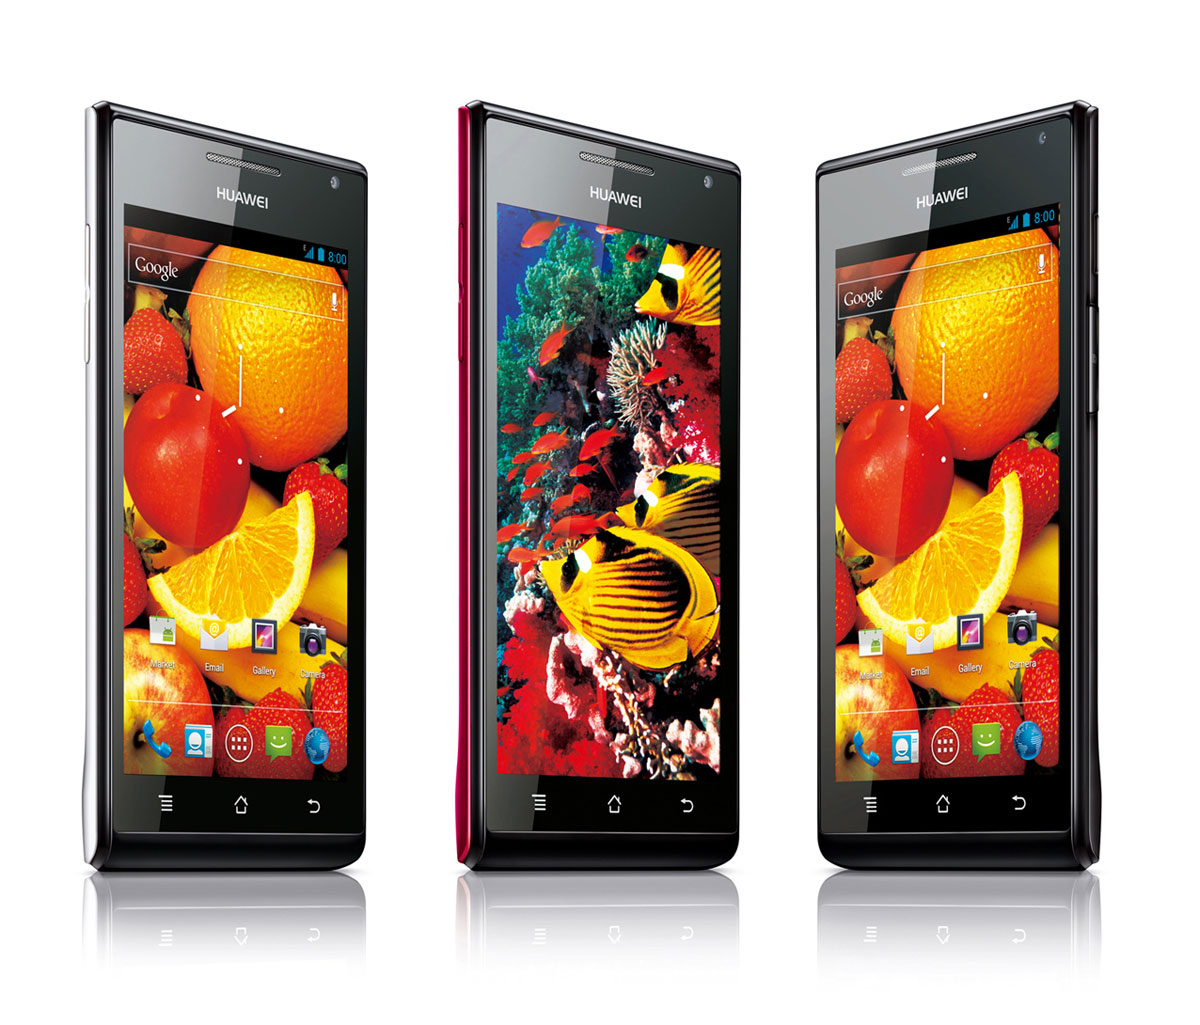 Huawei Ascend P1-S